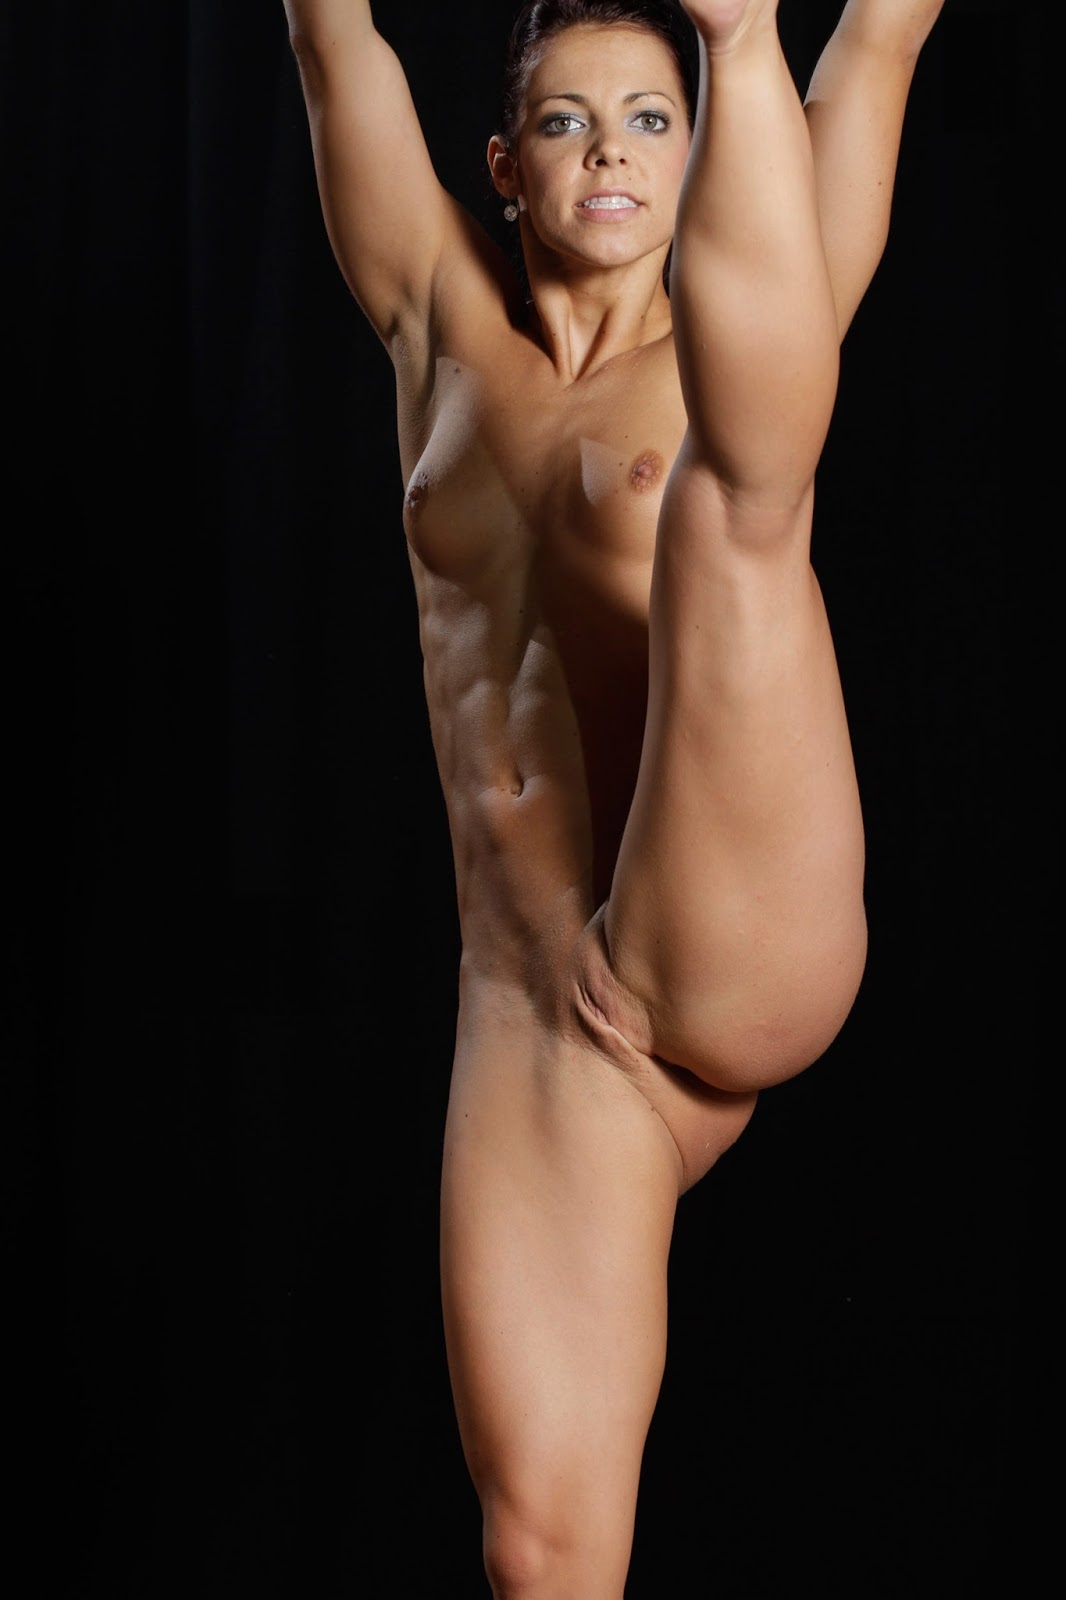 Nude Female Gymnast